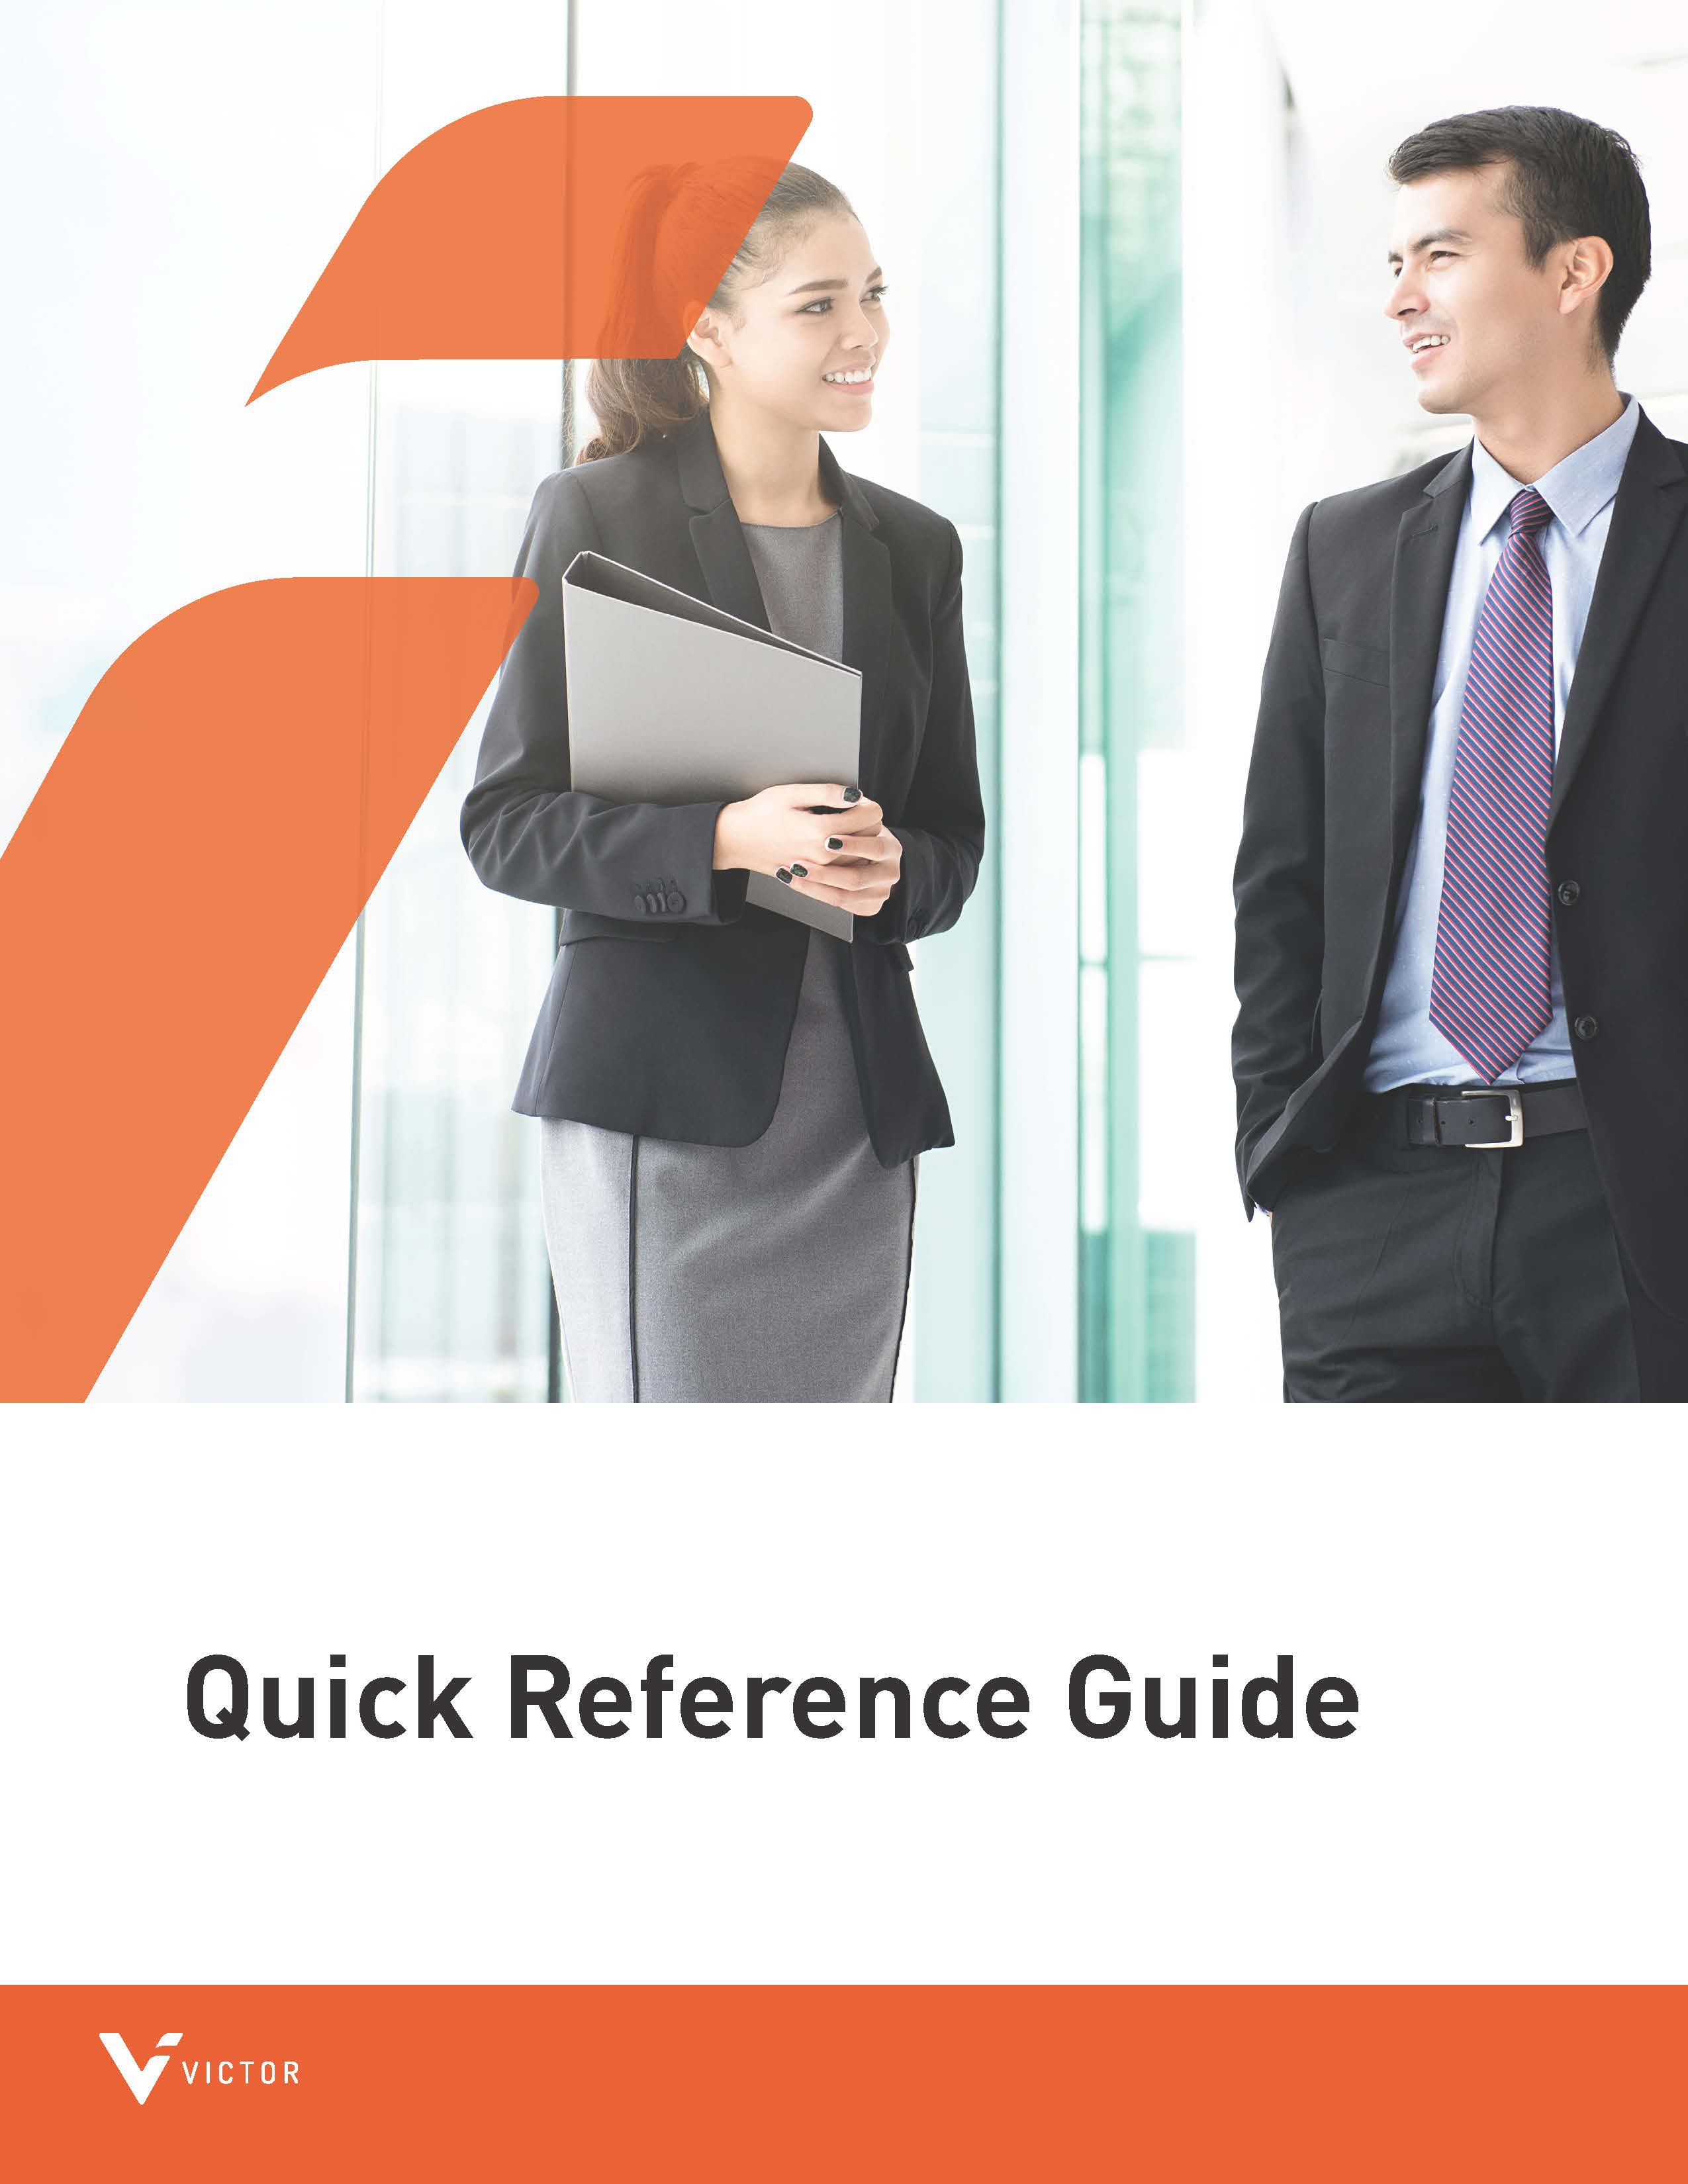 Electrical Safety Quick Reference Guide - TPC Bookstore